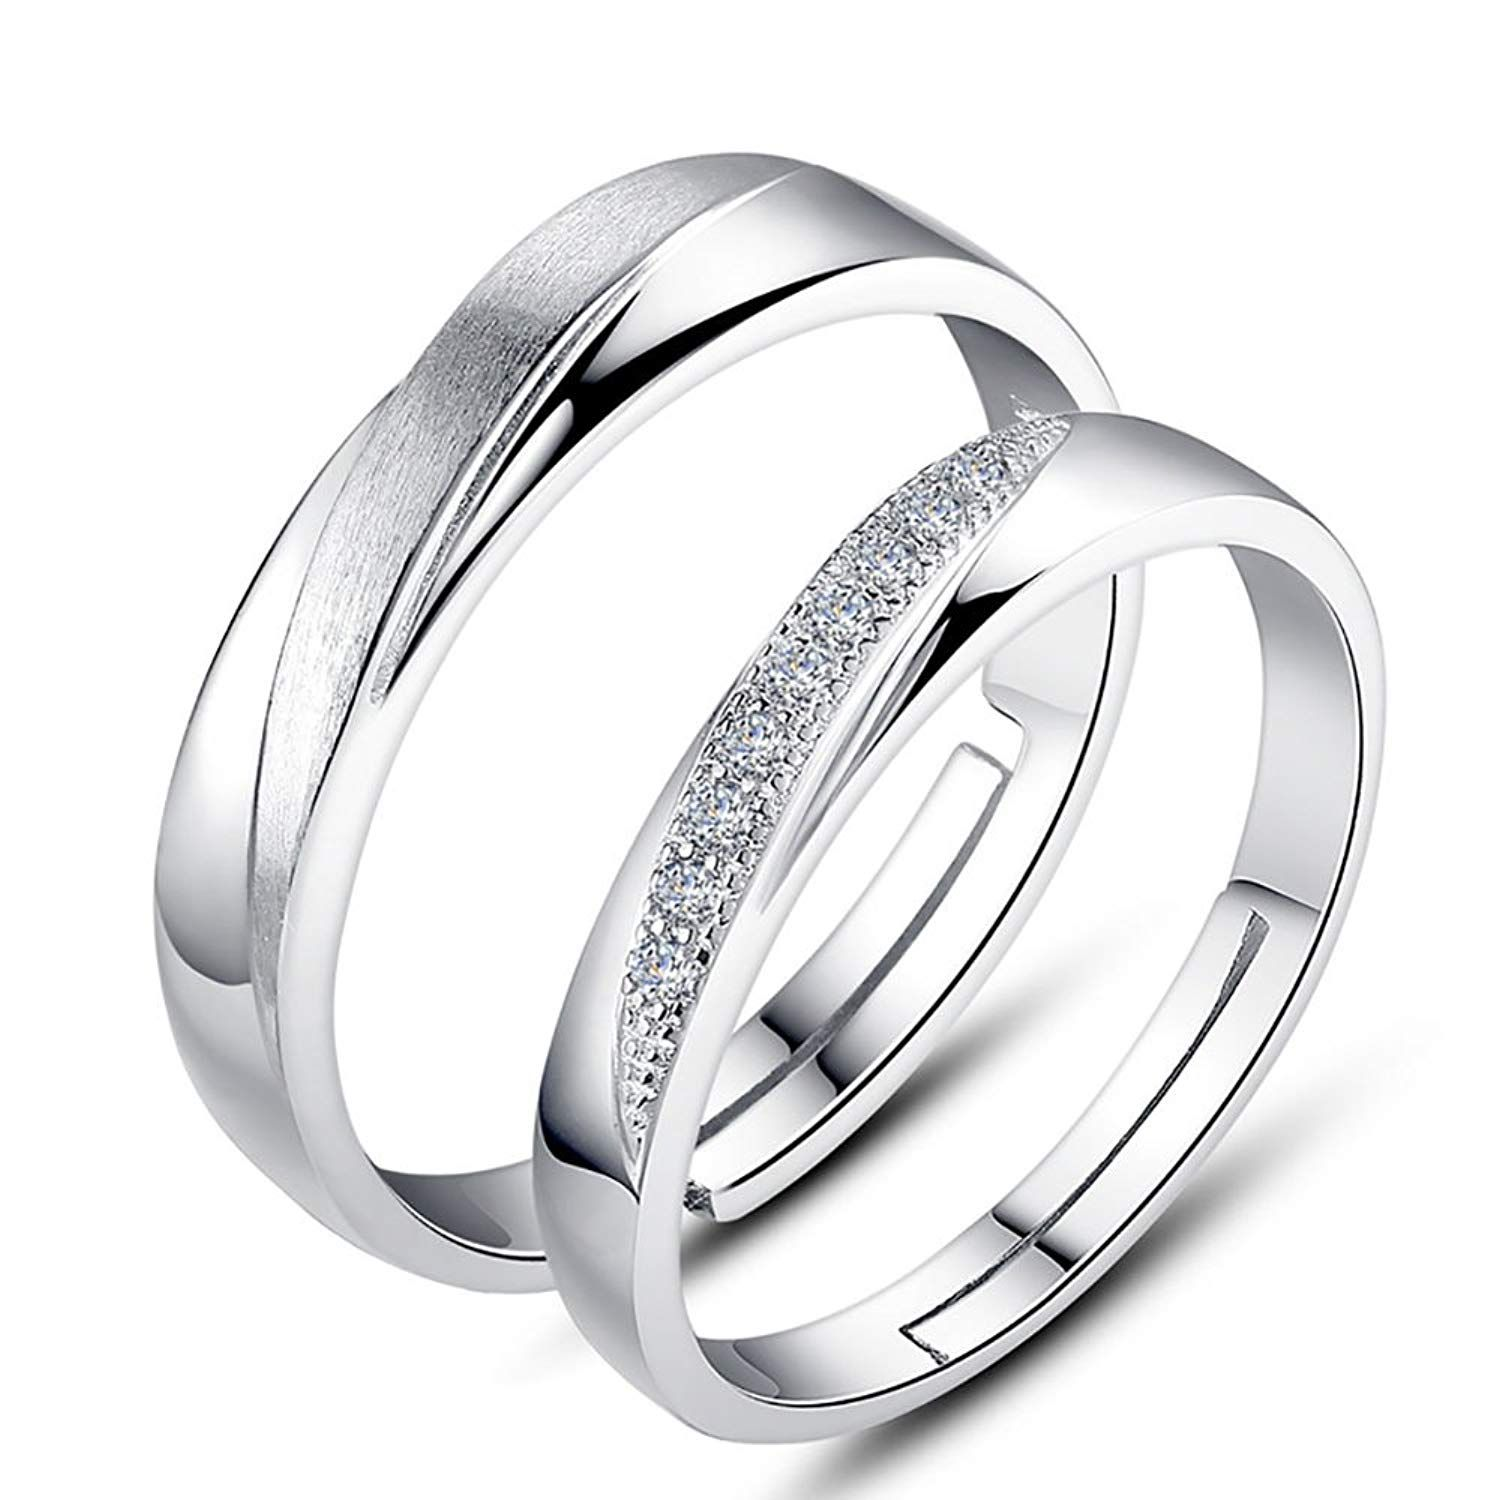 Tidoo Jewelry 1pair/lot Frosted Engagement Intersection